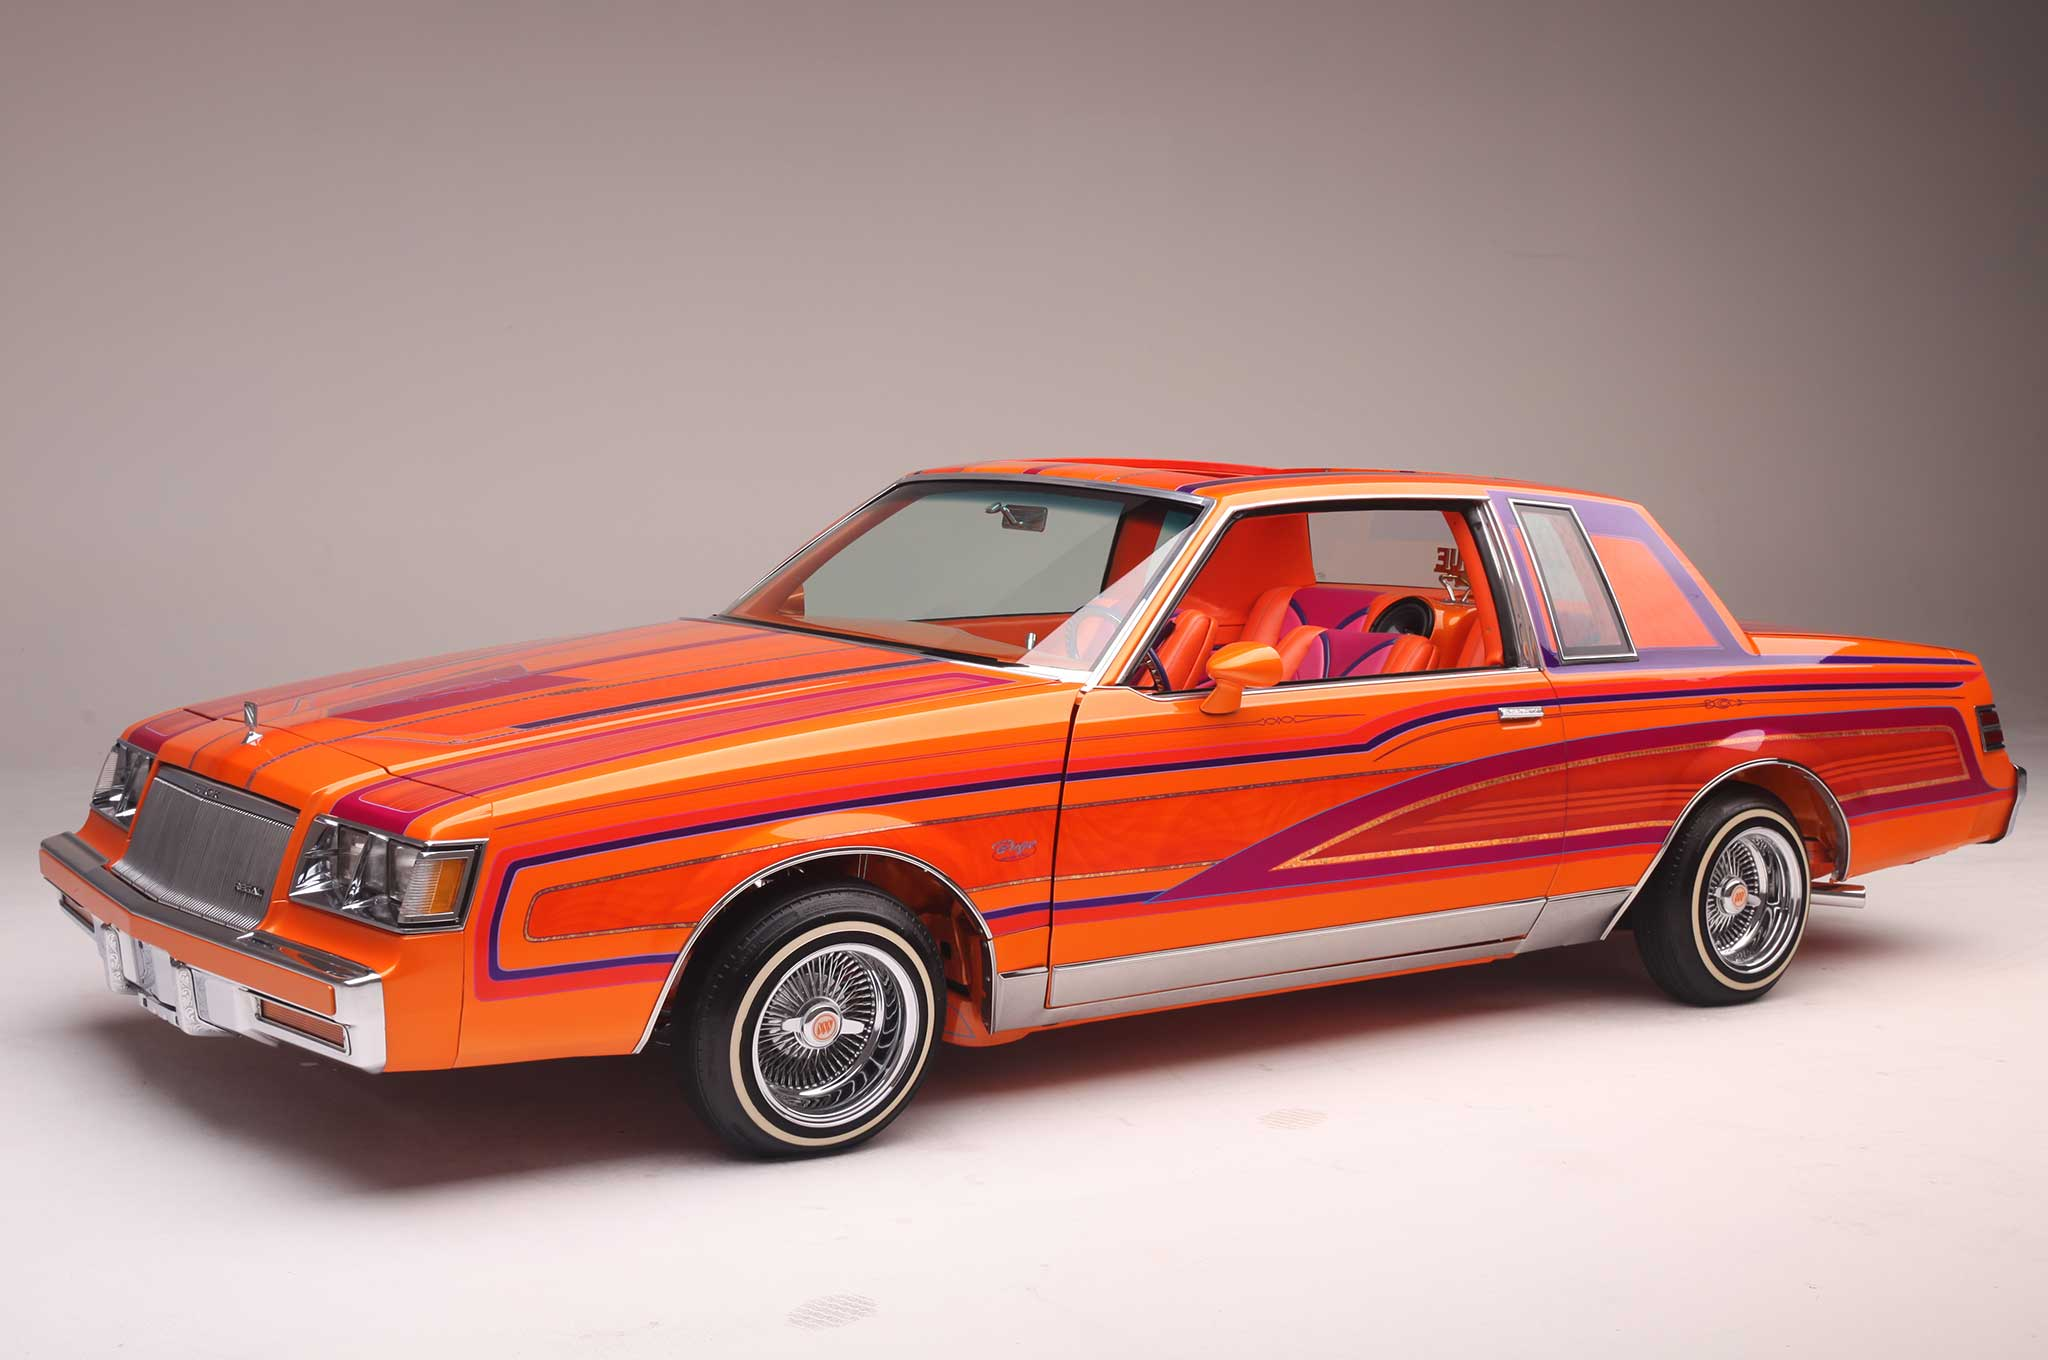 1985 buick regal the 7 year itch lowrider. Black Bedroom Furniture Sets. Home Design Ideas